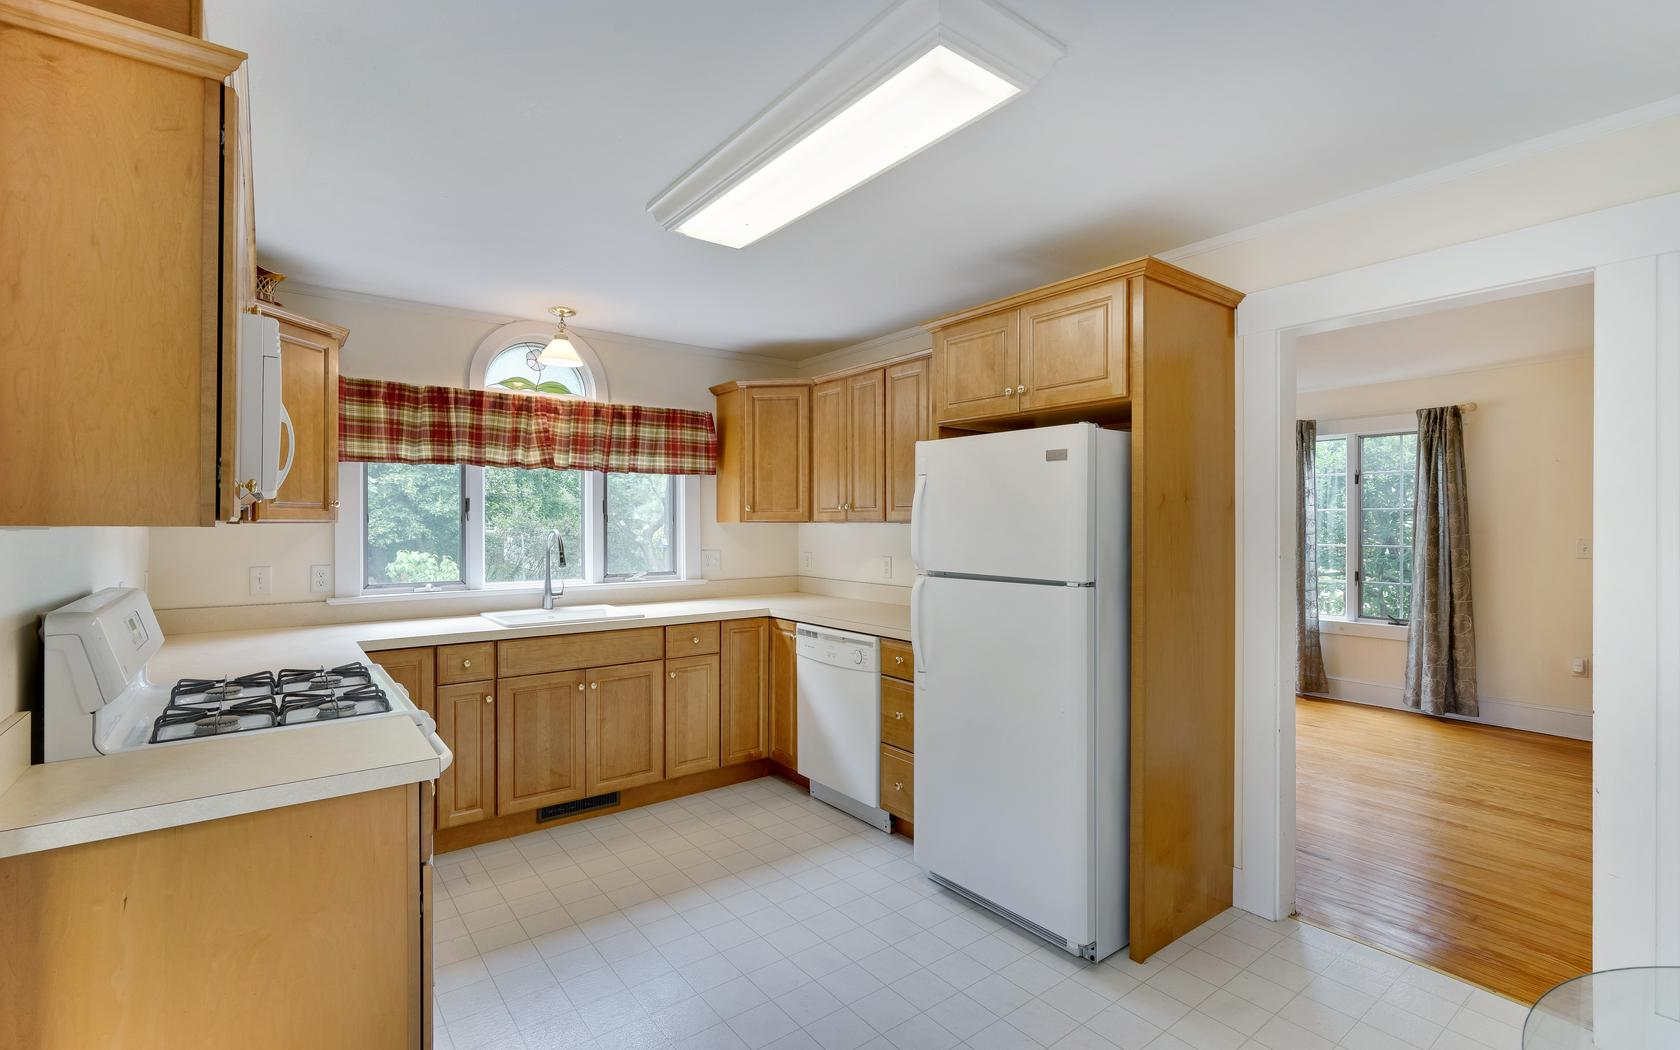 Additional photo for property listing at Updated Cottage in Allenwood! 3021 Atlantic Avenue Allenwood, 新泽西州 08720 美国